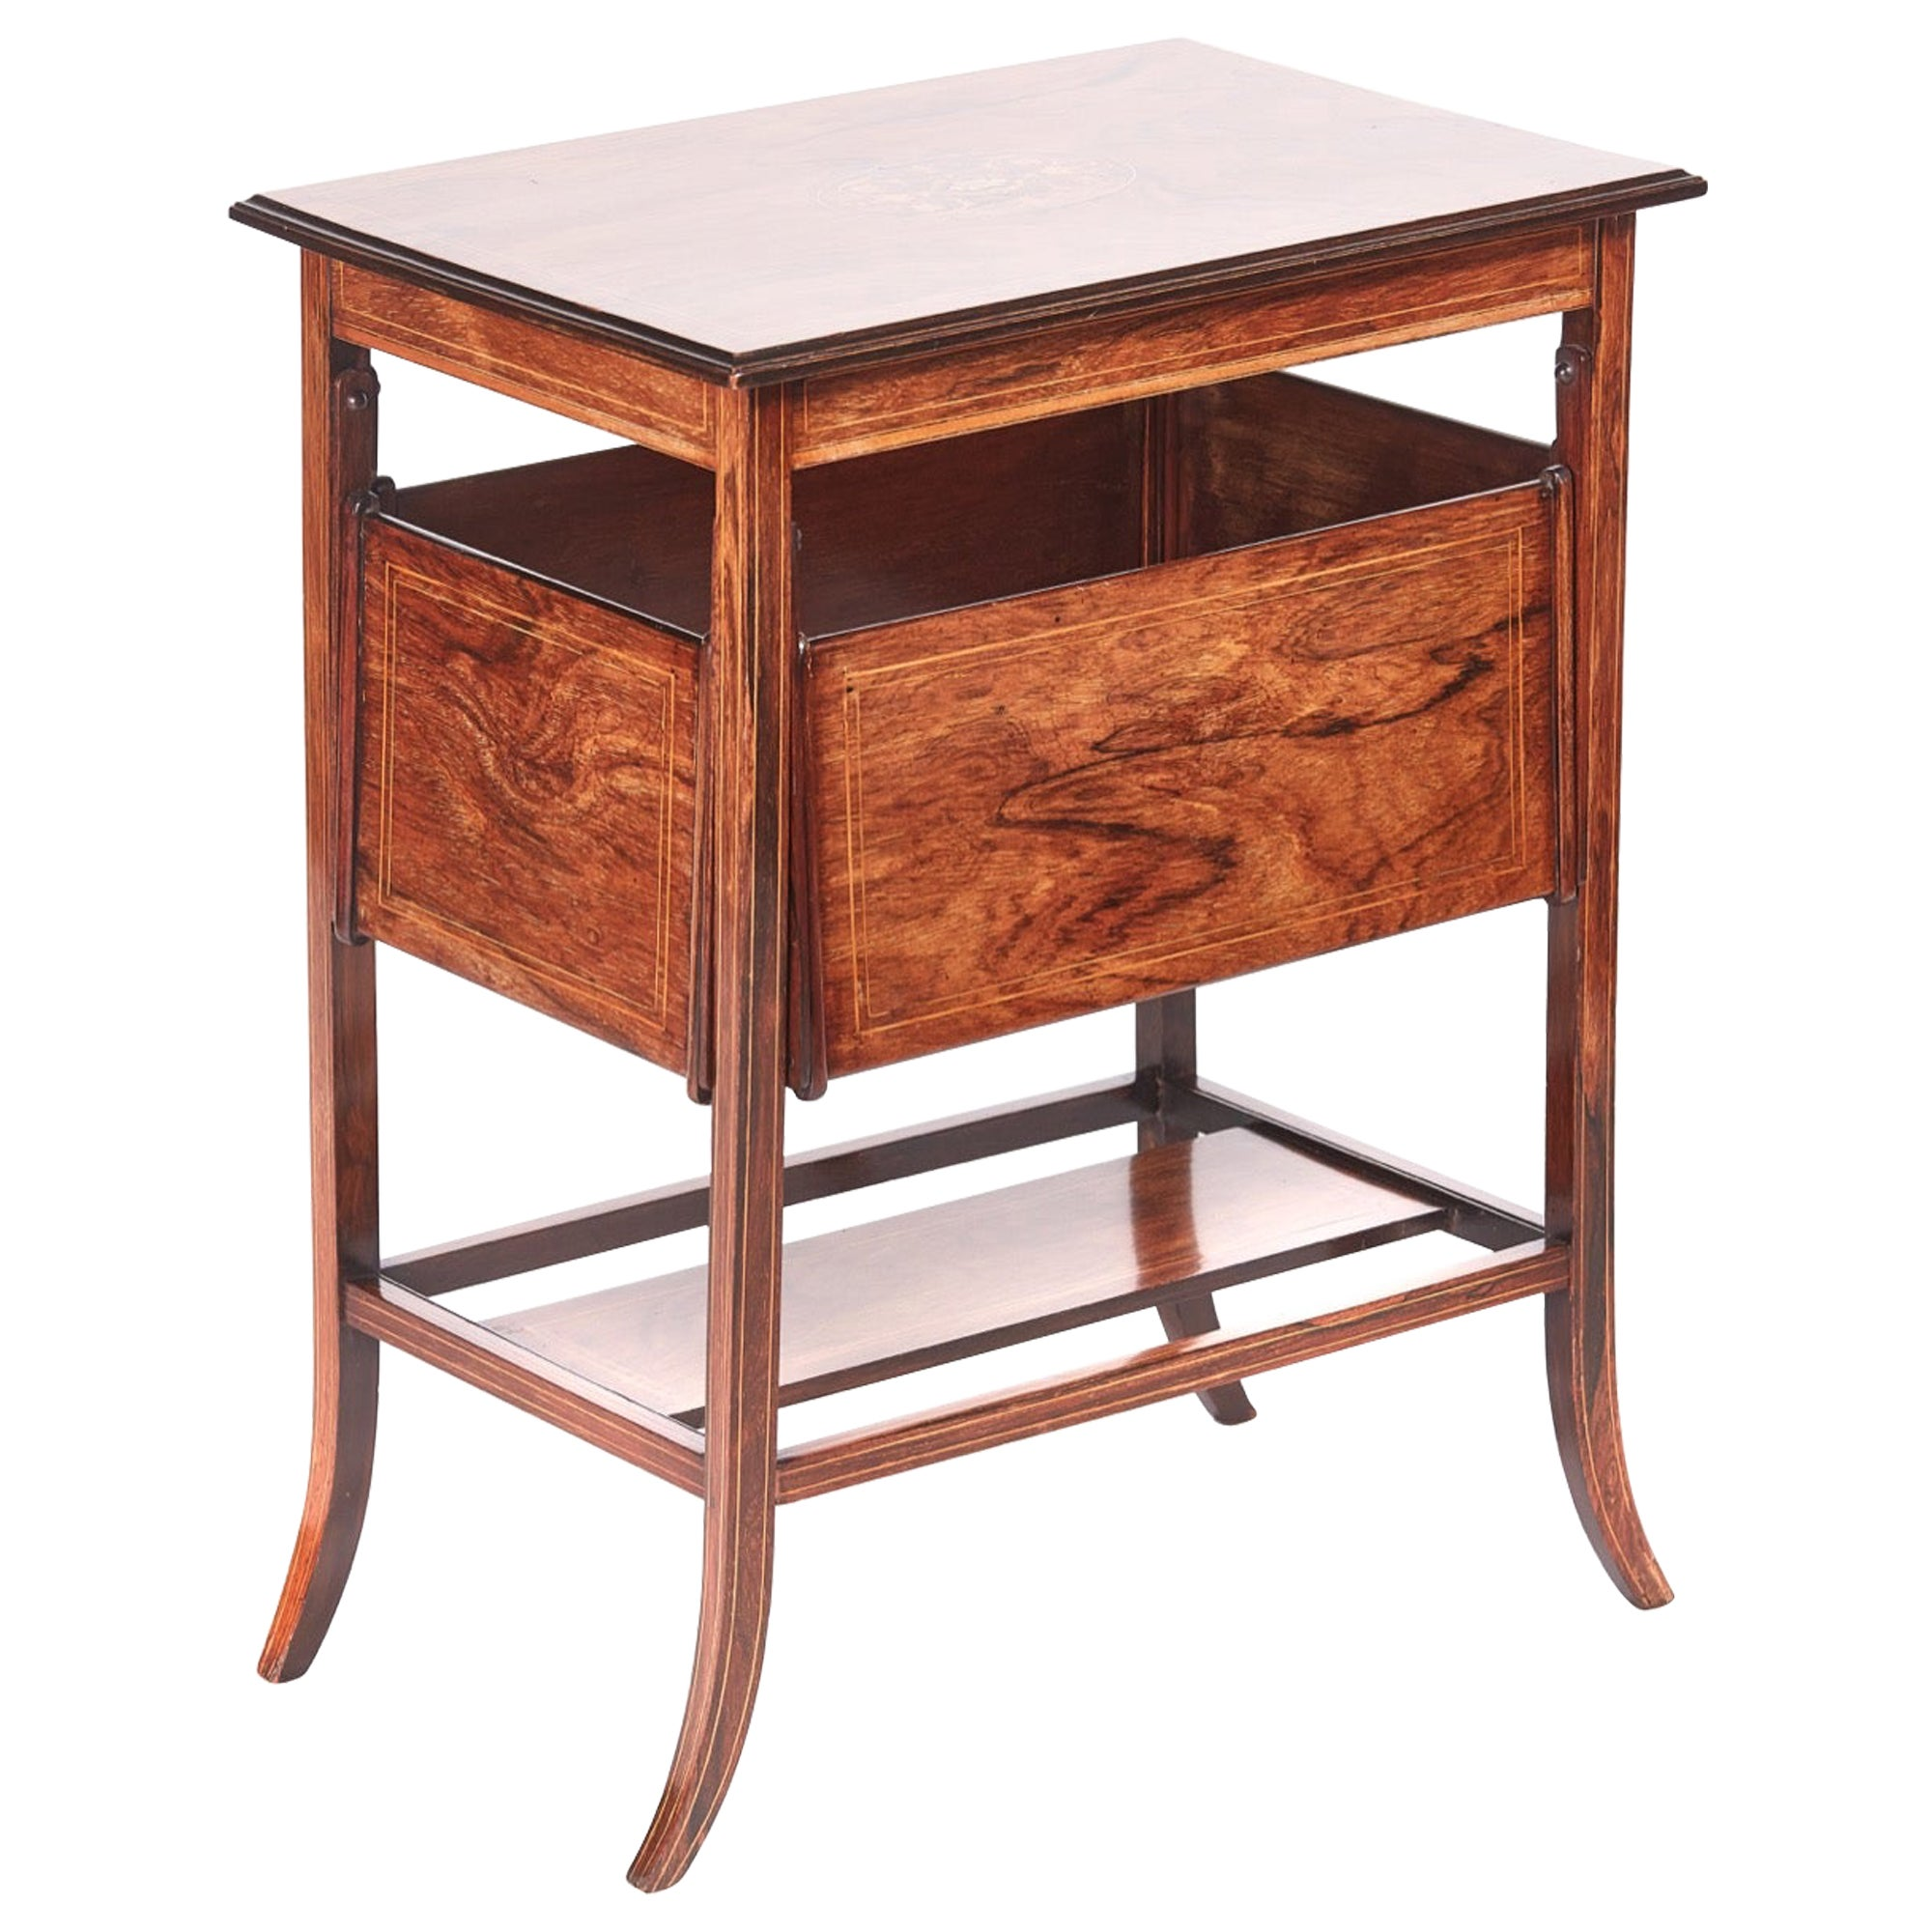 Antique Edwardian Inlaid Rosewood Centre Table